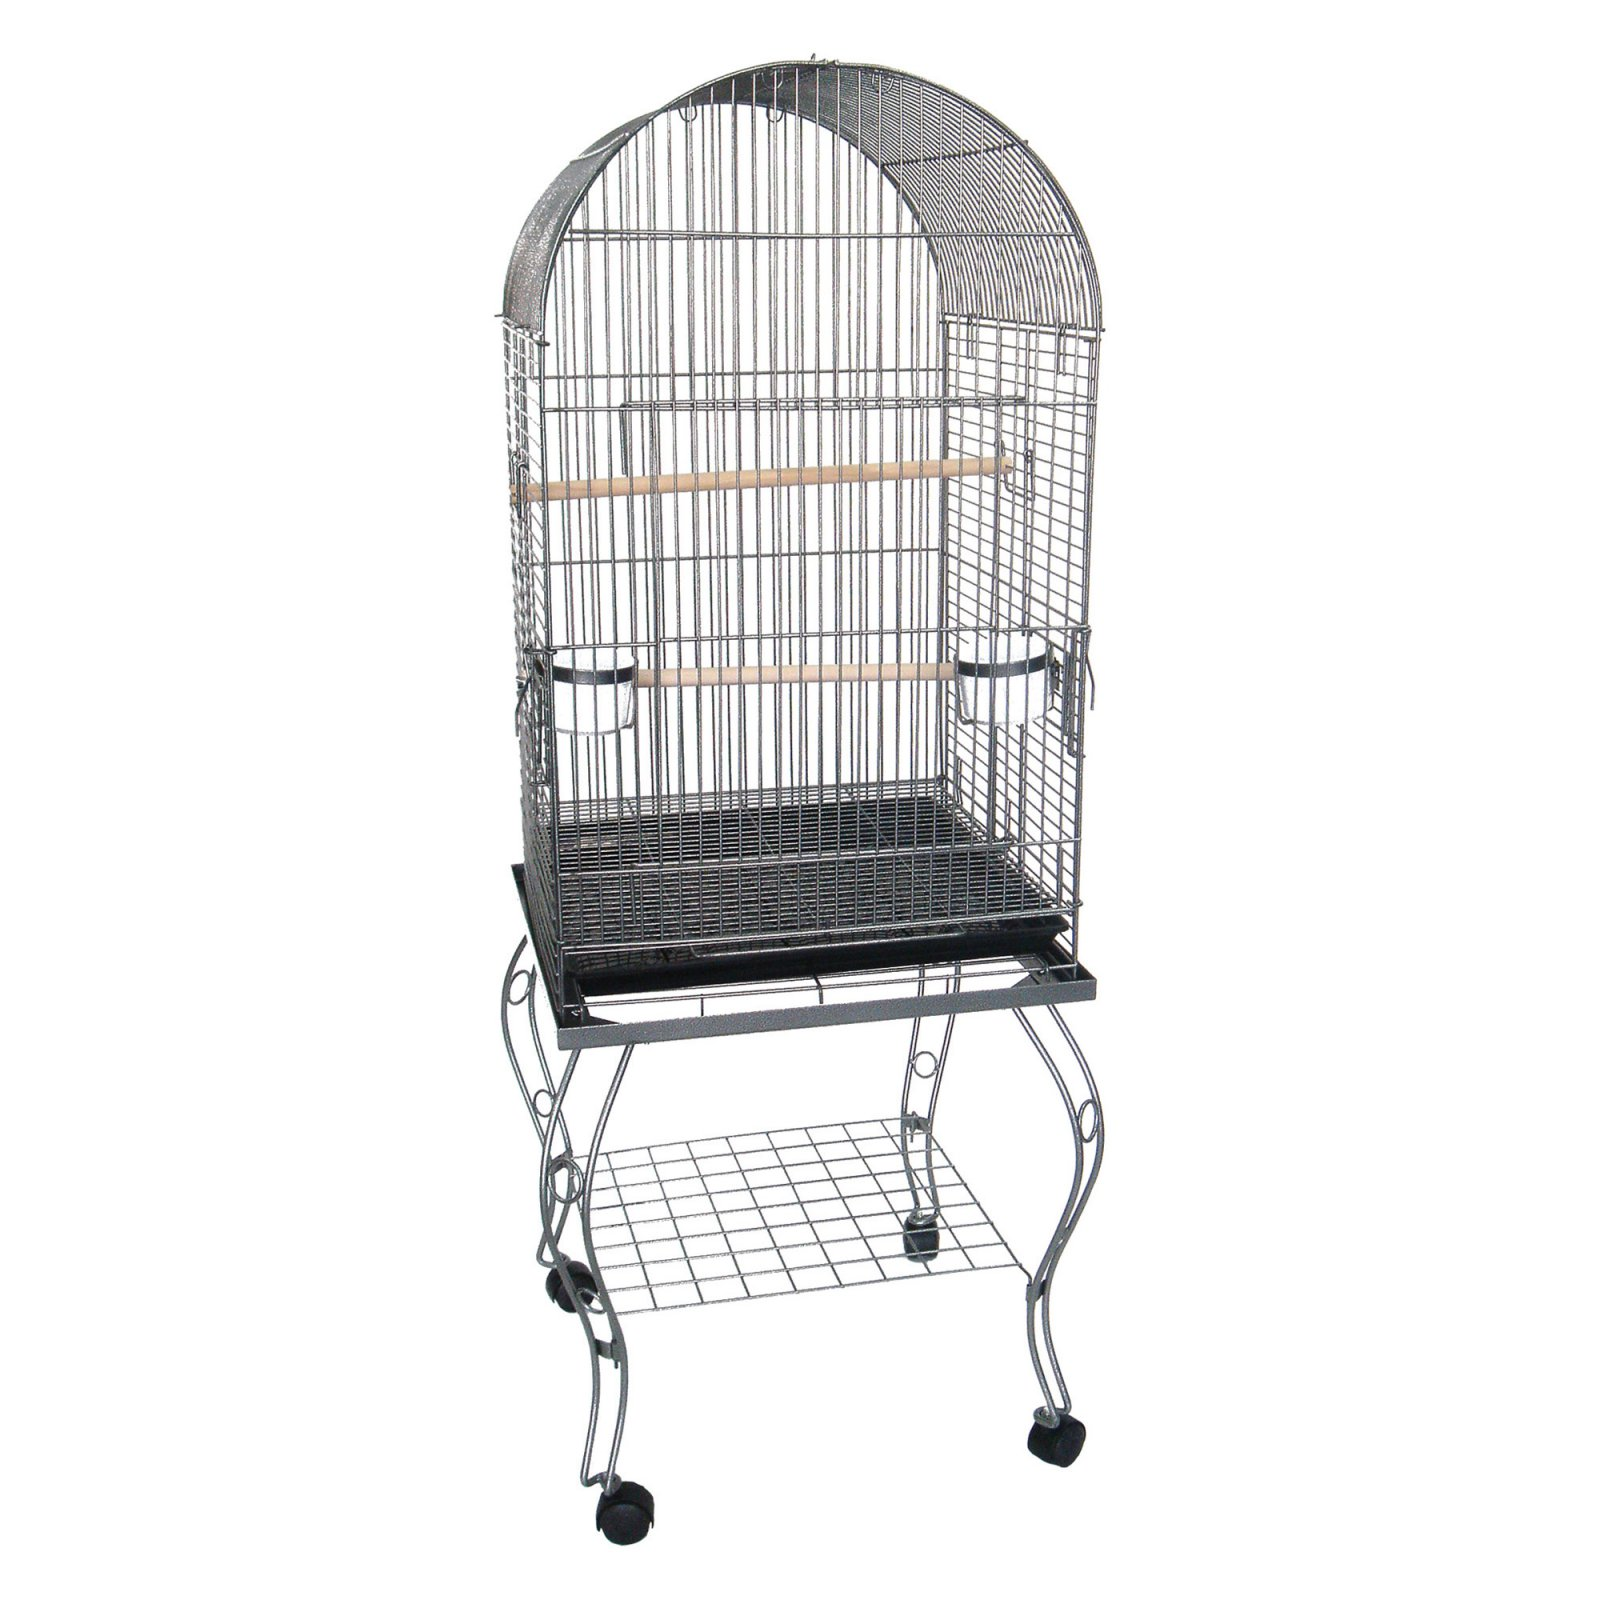 YML 0204AS 24-Inch Dometop Parrot Cage with Stand, Antique Silver